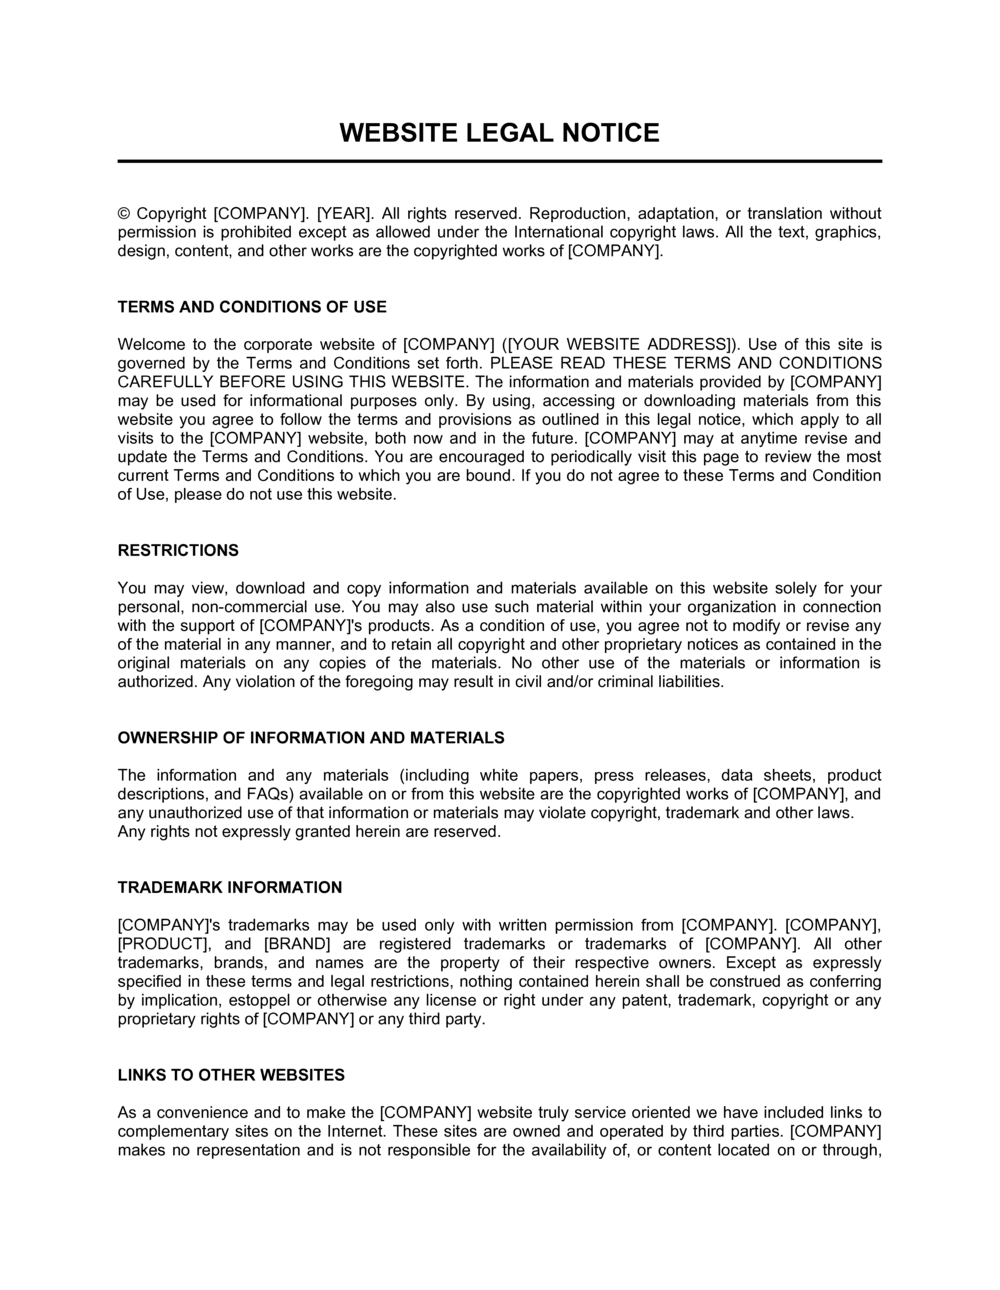 Business-in-a-Box's Legal Notice Template